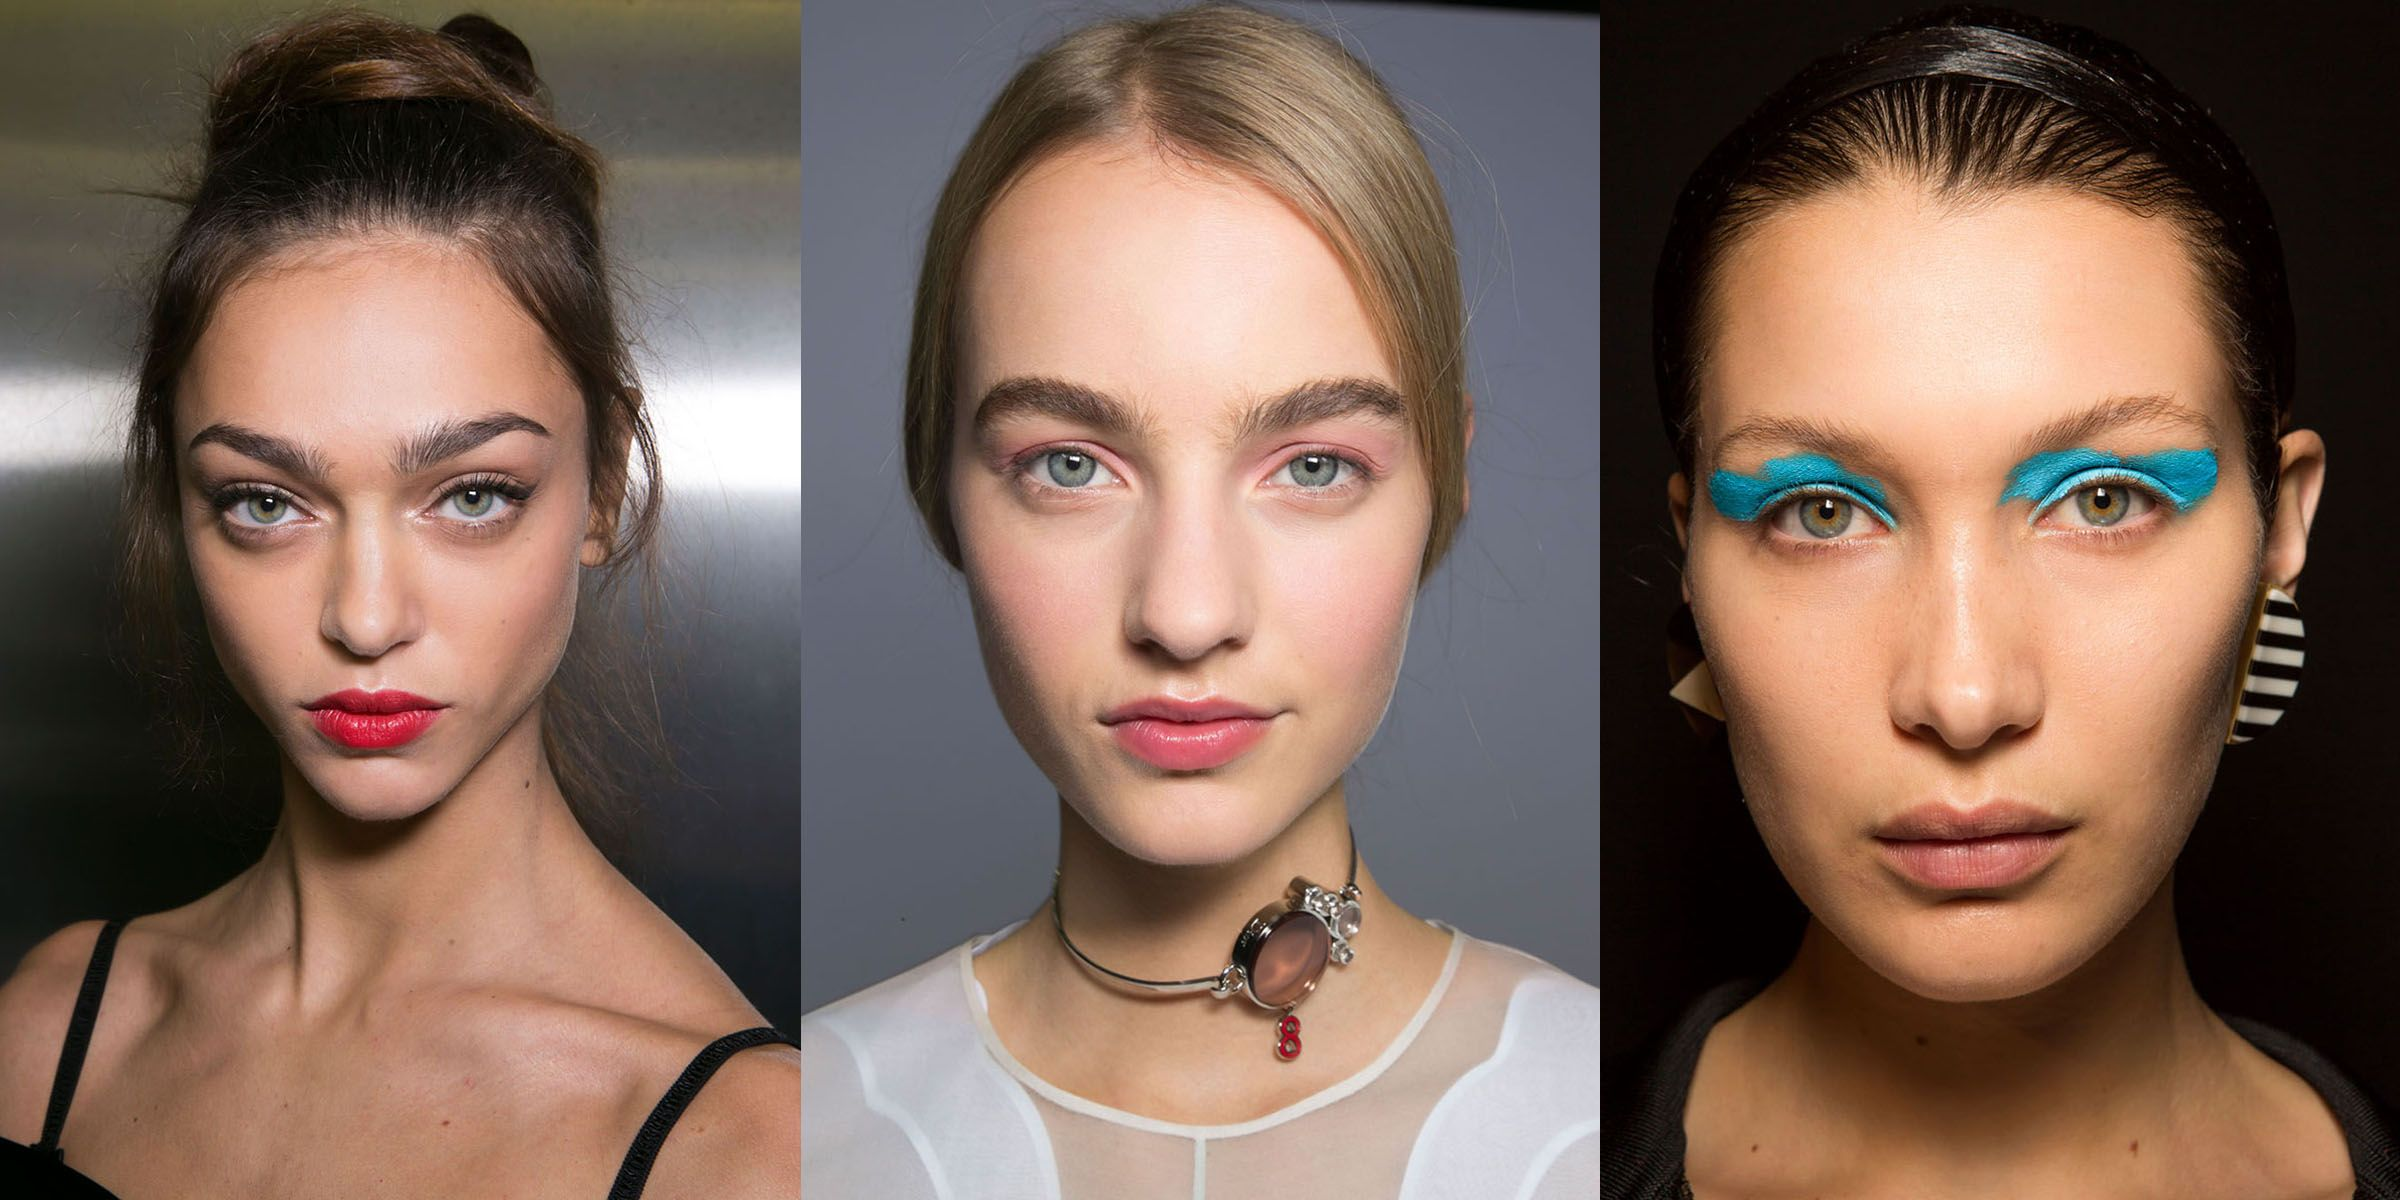 bde964e4298 The Best Makeup Trends for Spring 2016 - Backstage Beauty Spring 2016